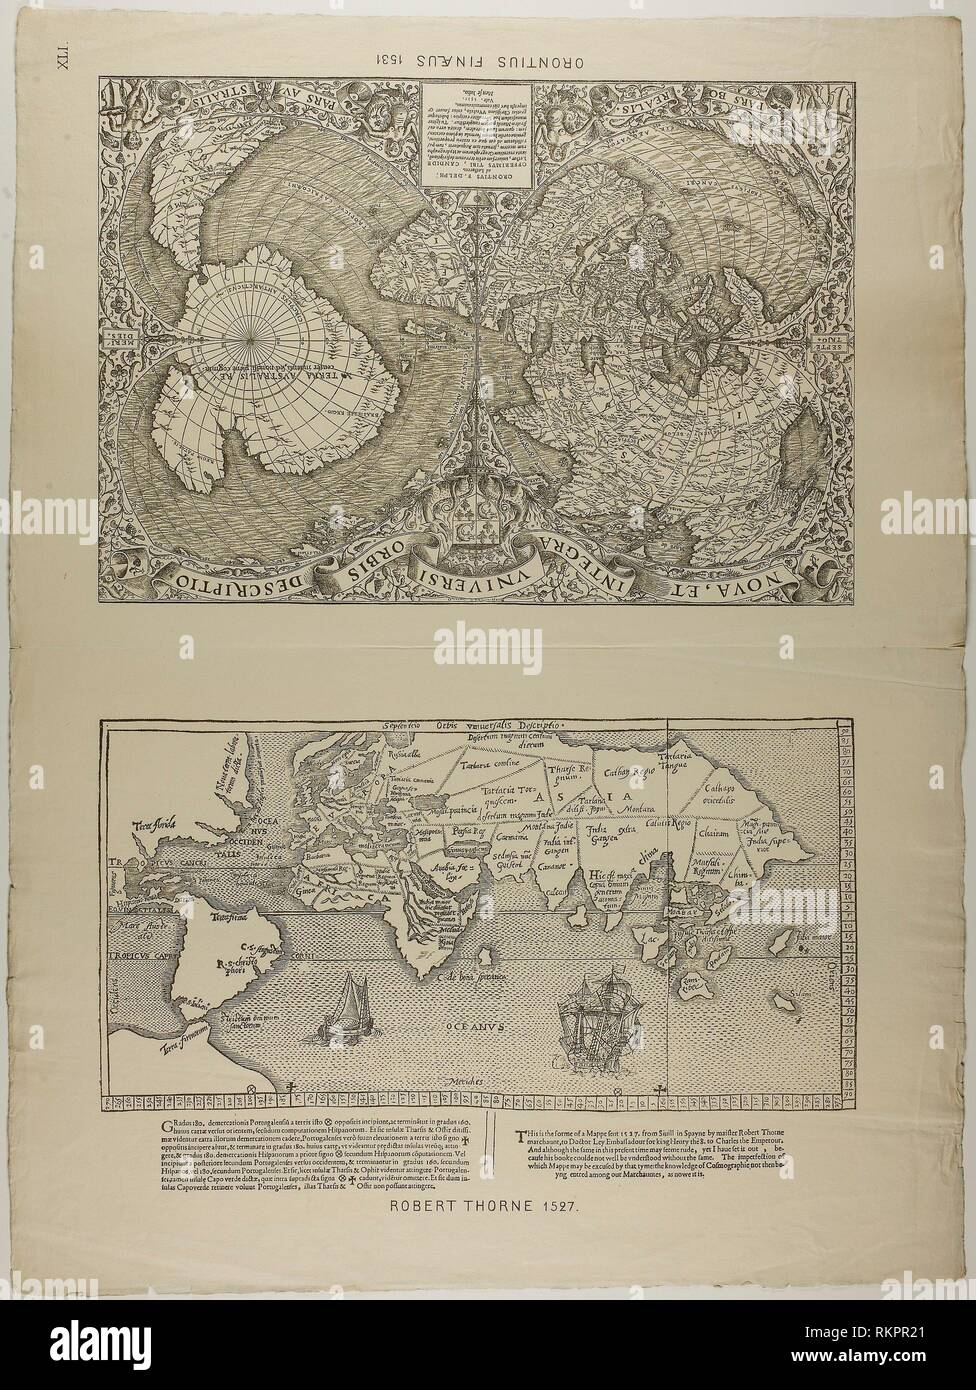 Orontius Finaeus - 1531, reprinted 1889 - Unknown Artist (English, 19th century) after a map by Robert Thorne (English, active 1527) - Artist: Robert - Stock Image